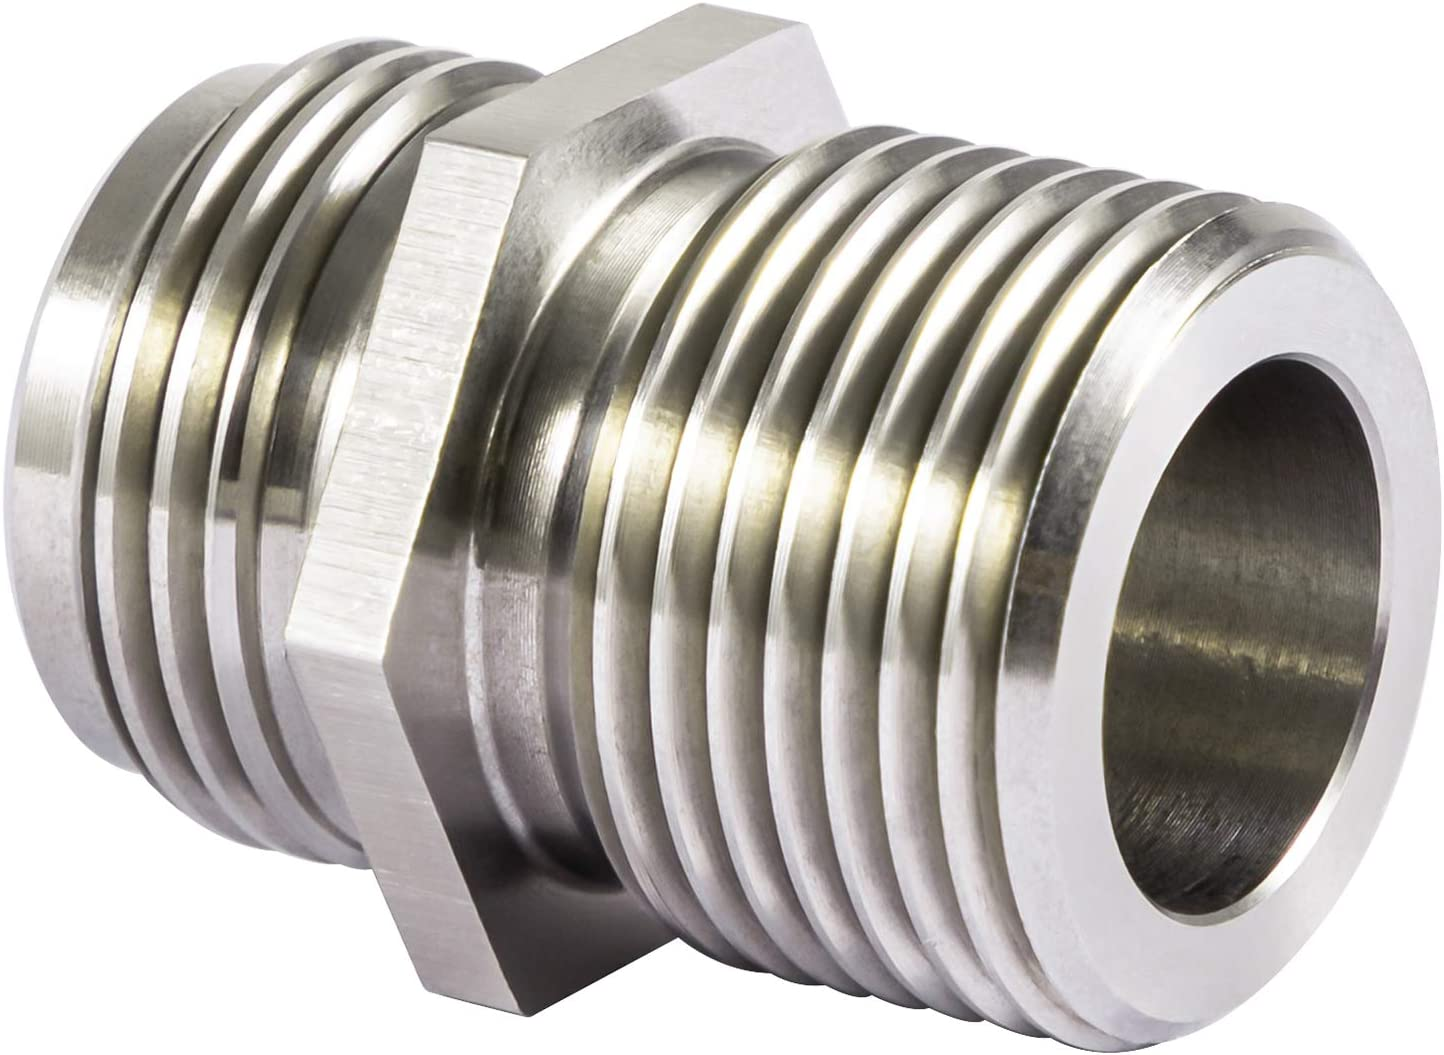 68RFE Transmission Spin On Filter Fits Max 44% OFF Screw Diesel for 40% OFF Cheap Sale Cummins